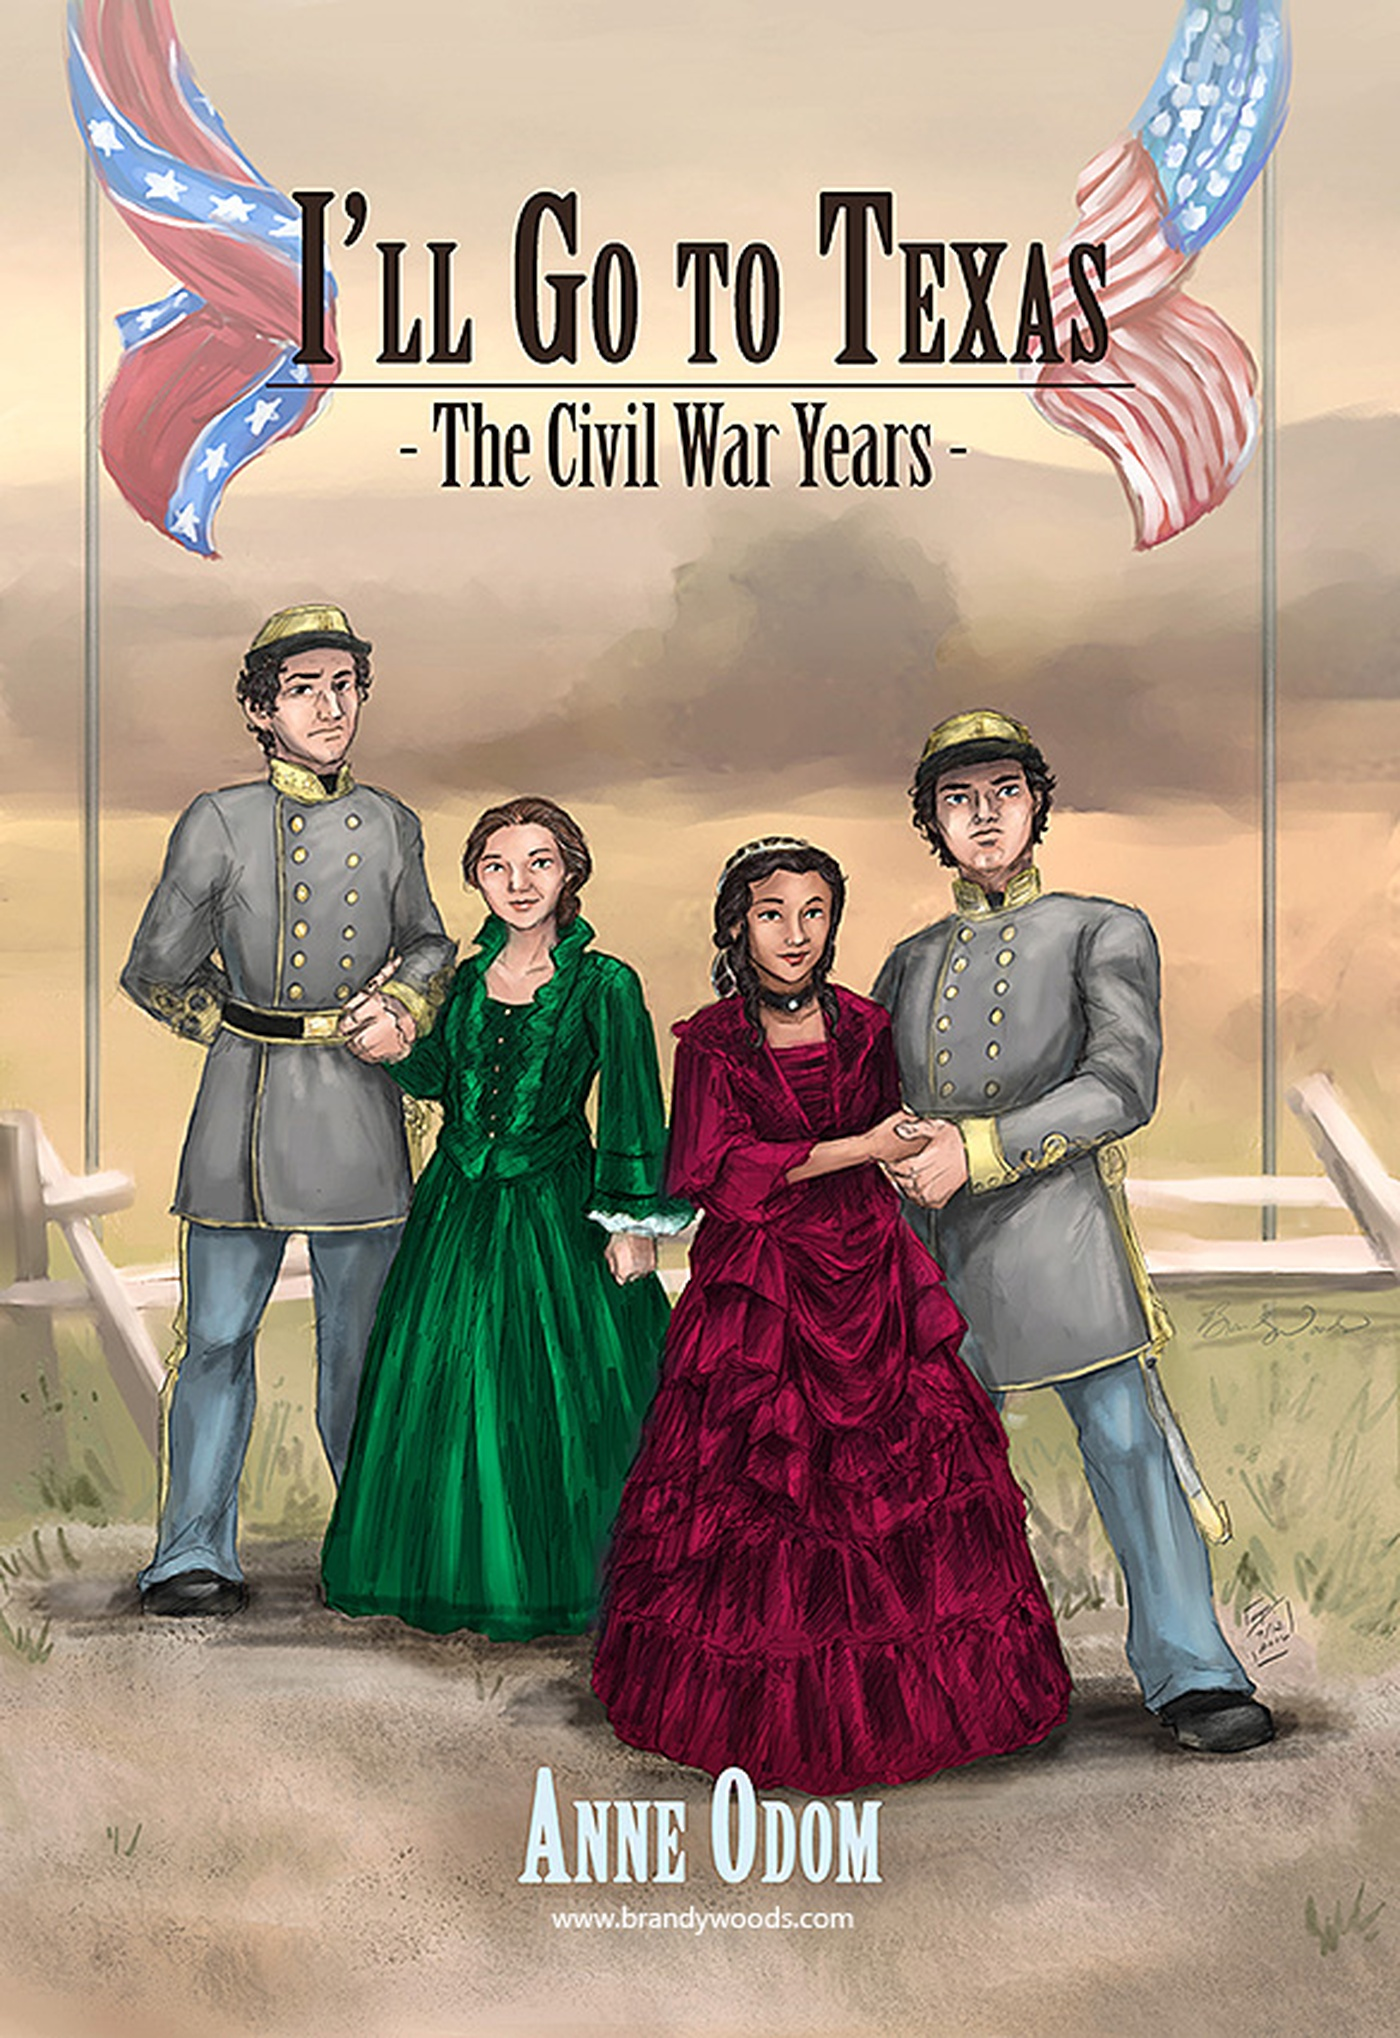 Brandy Woods - Civil War Years cover